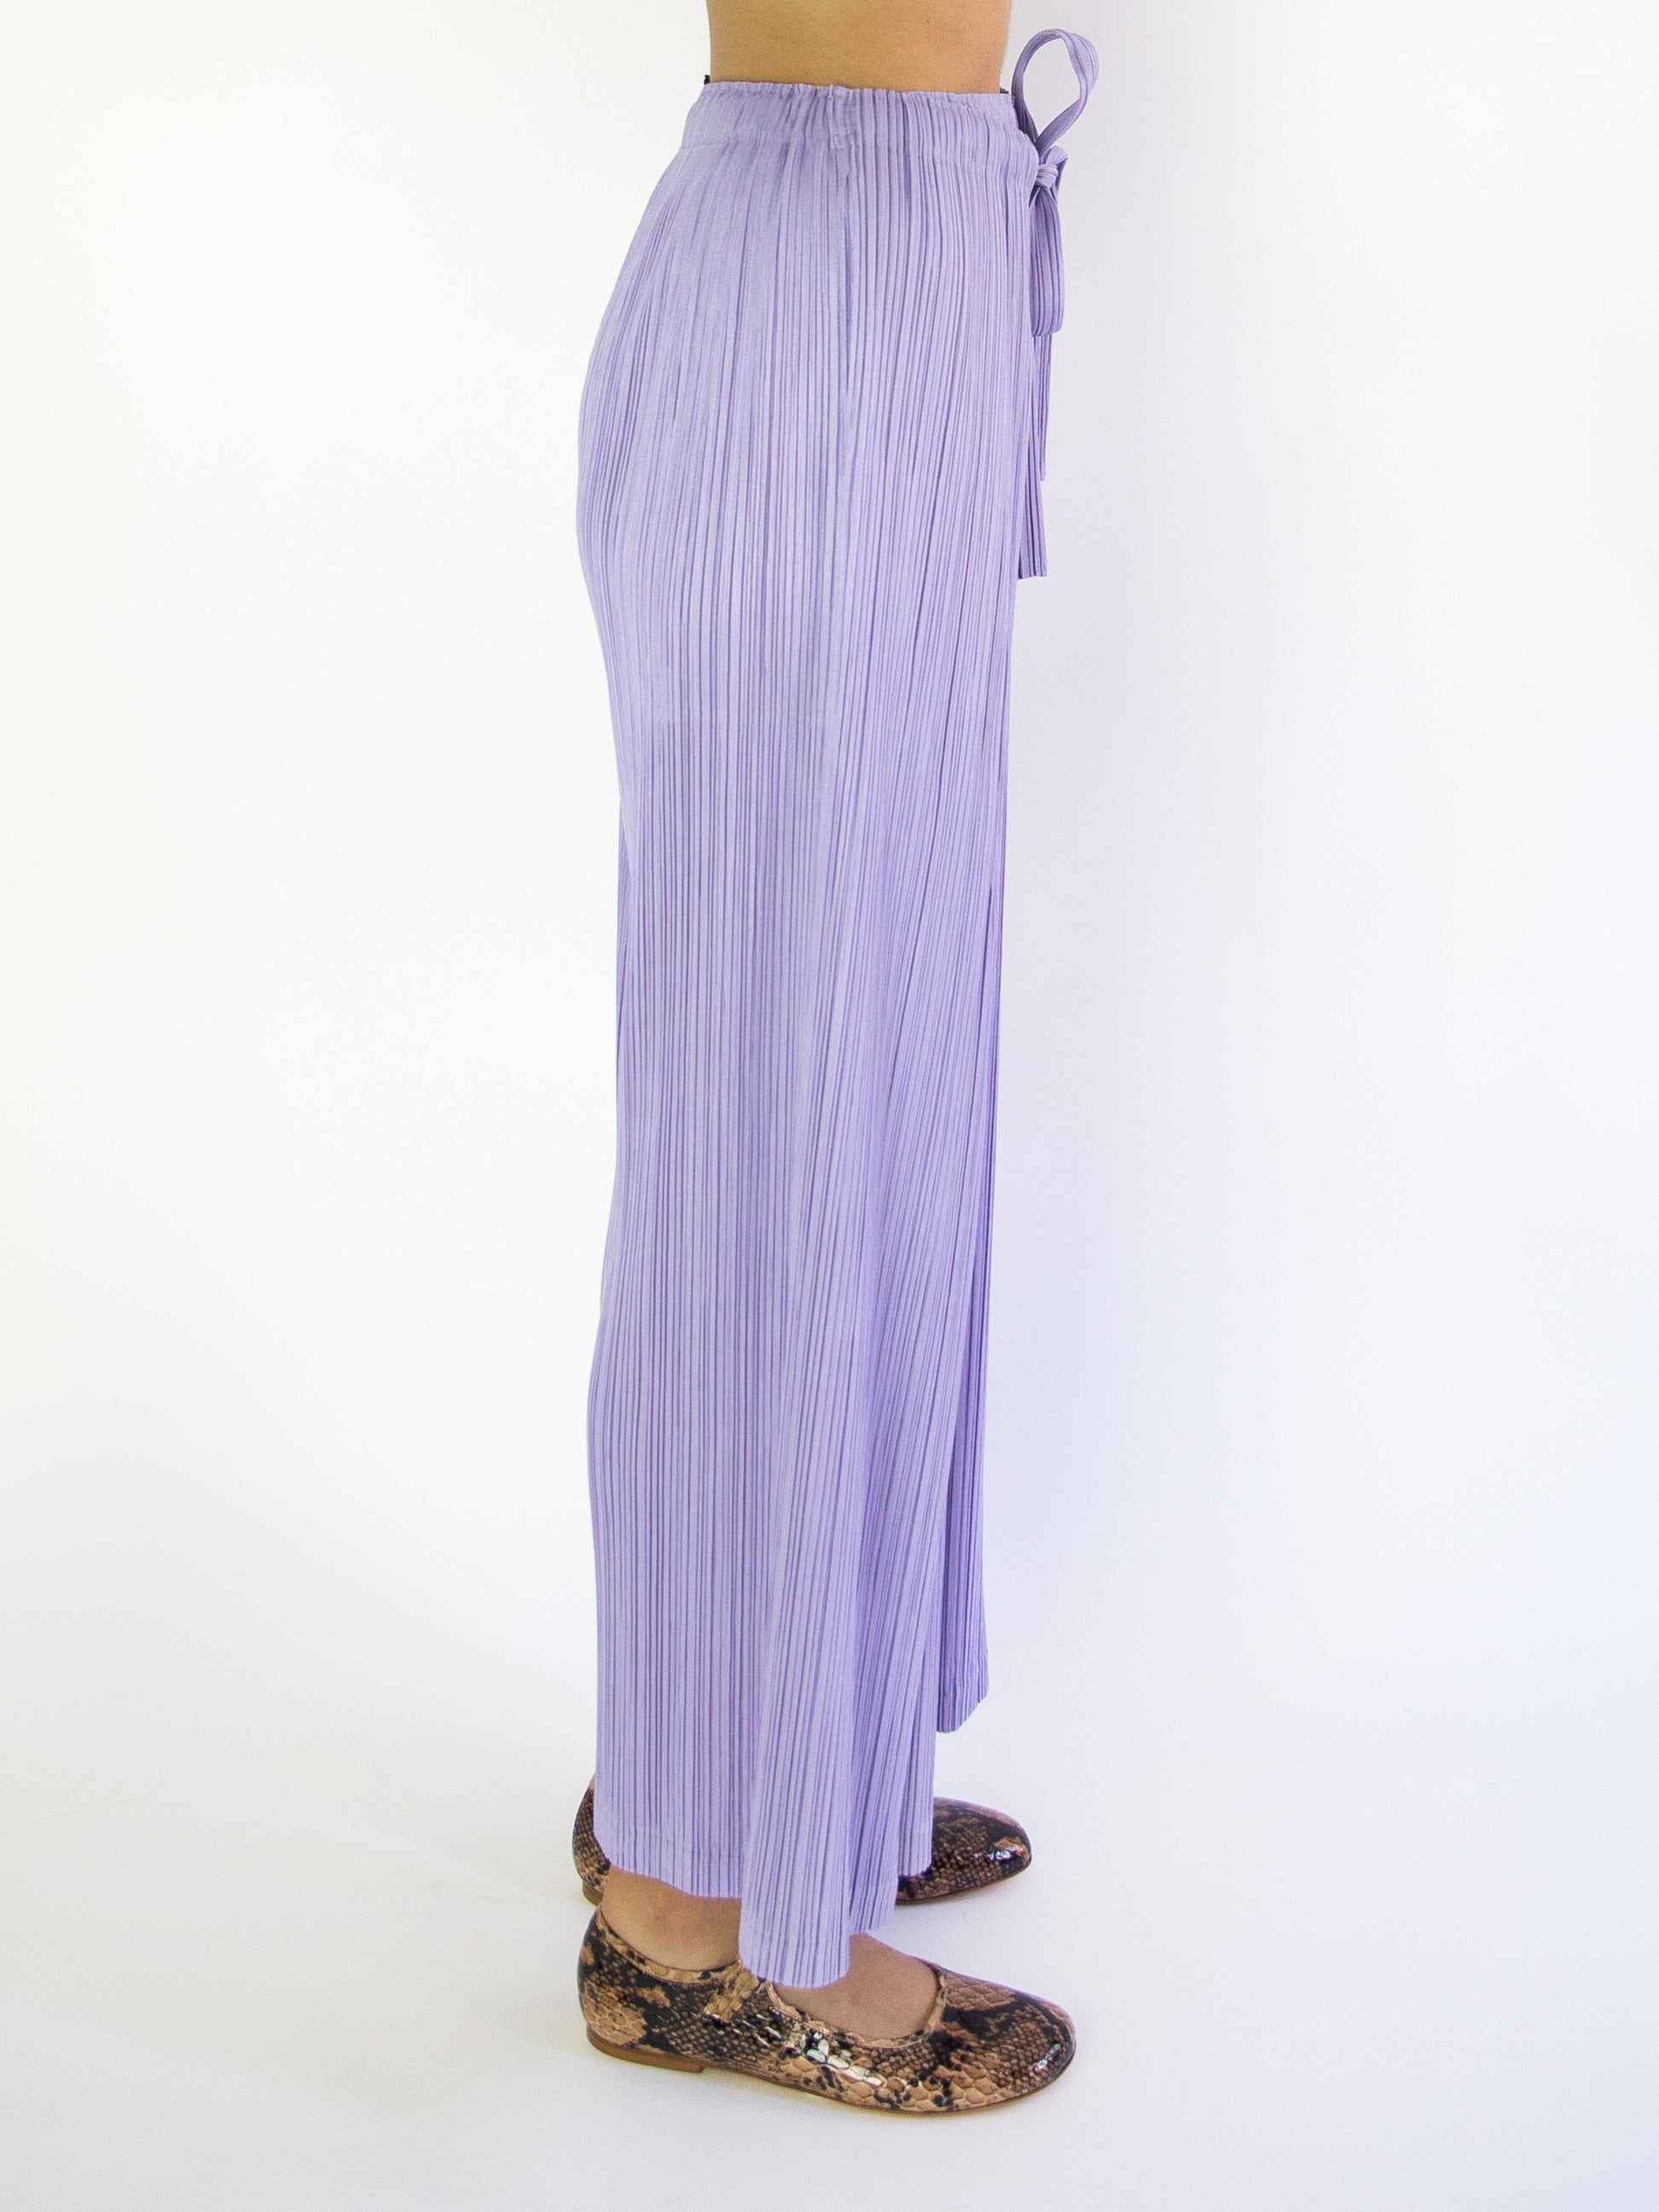 PLEATS PLEASE ISSEY MIYAKE Thicker Bottoms 1 Tie Front Pant - Lilac